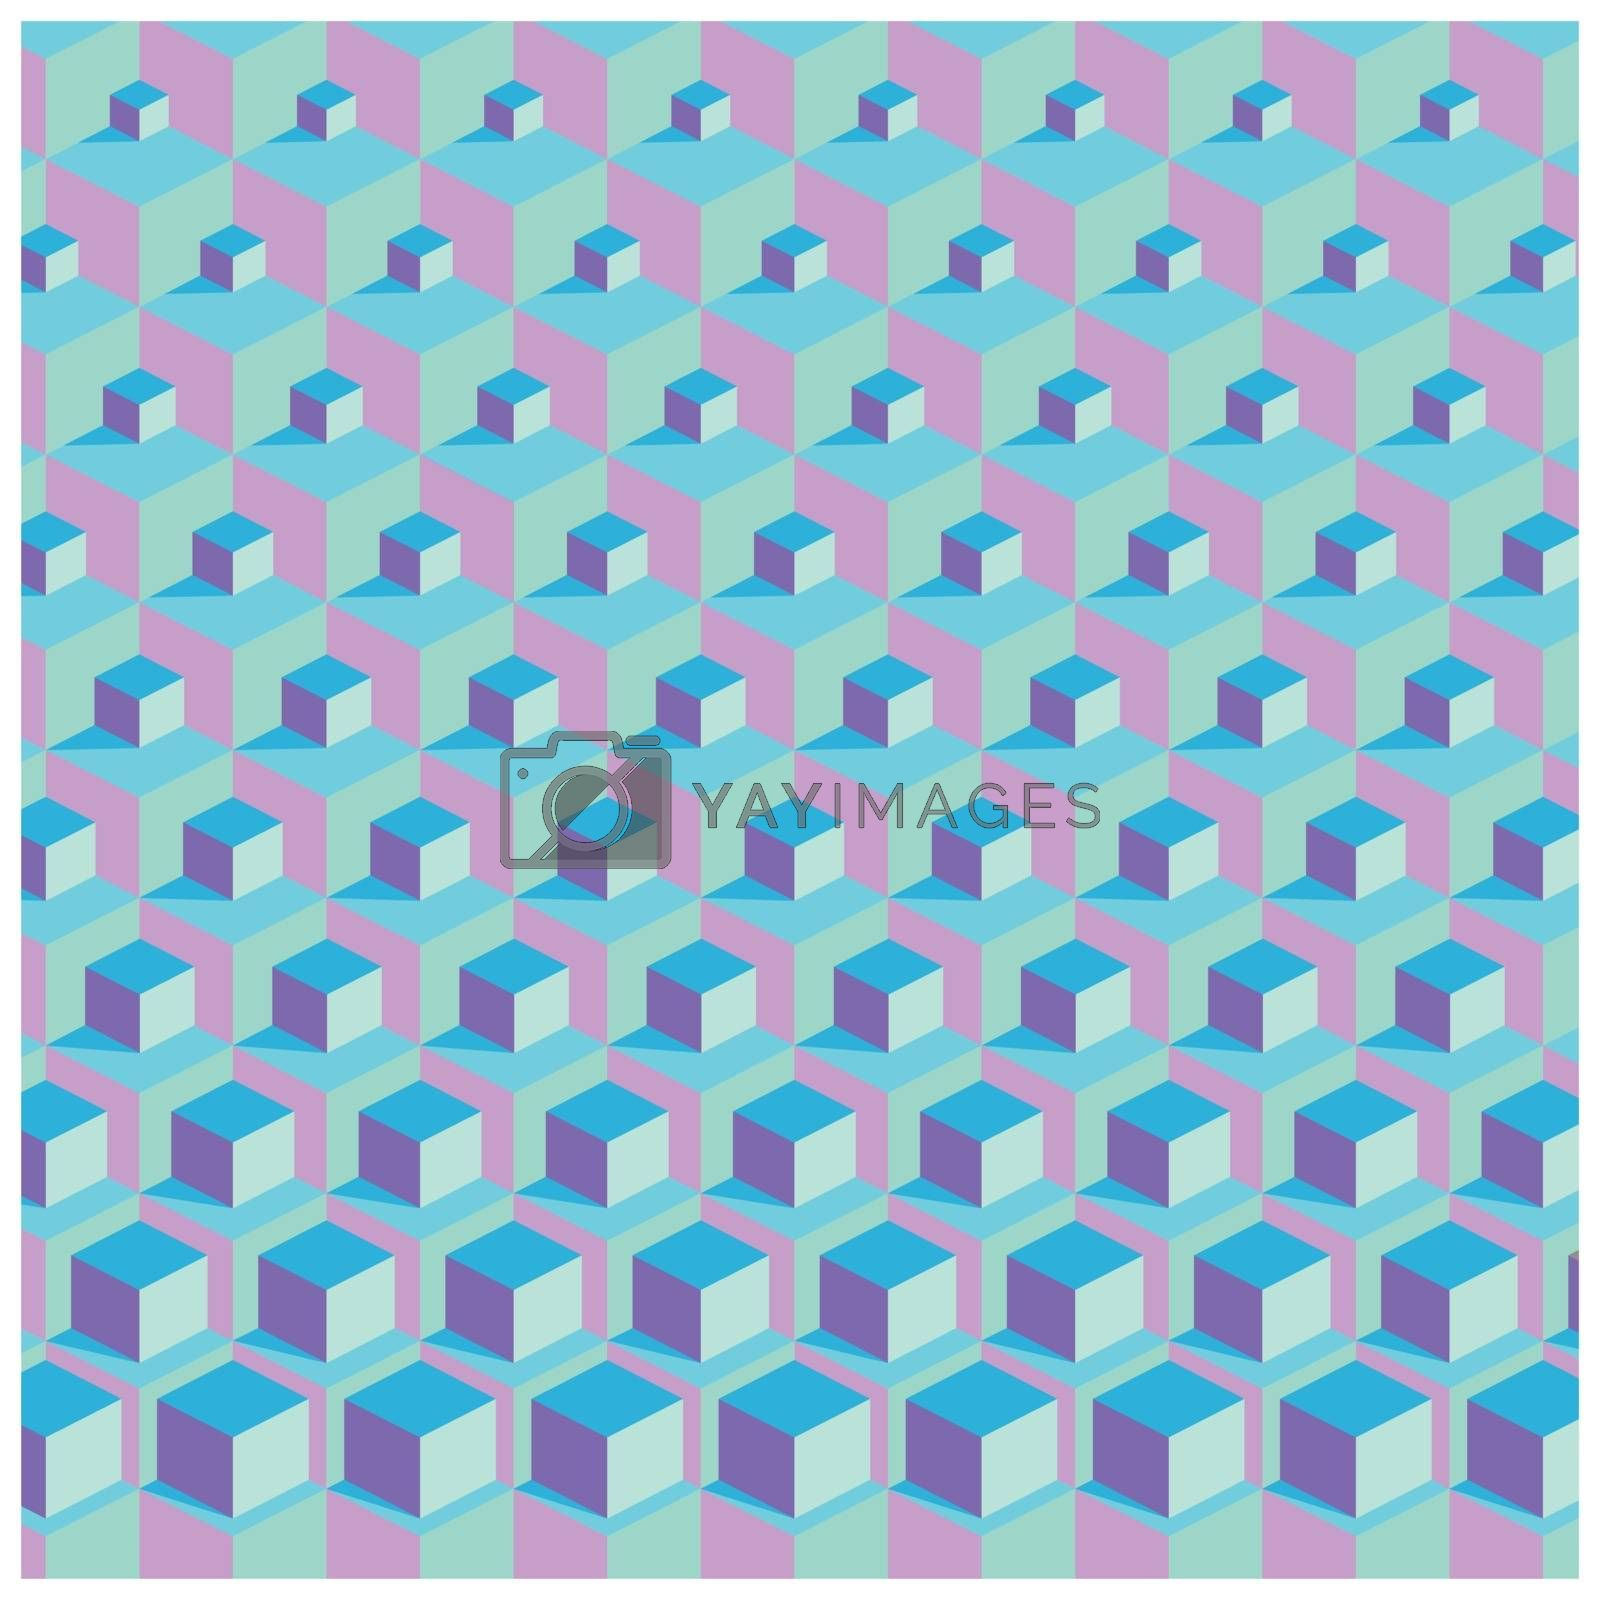 Royalty free image of colorful background with cubes by scusi